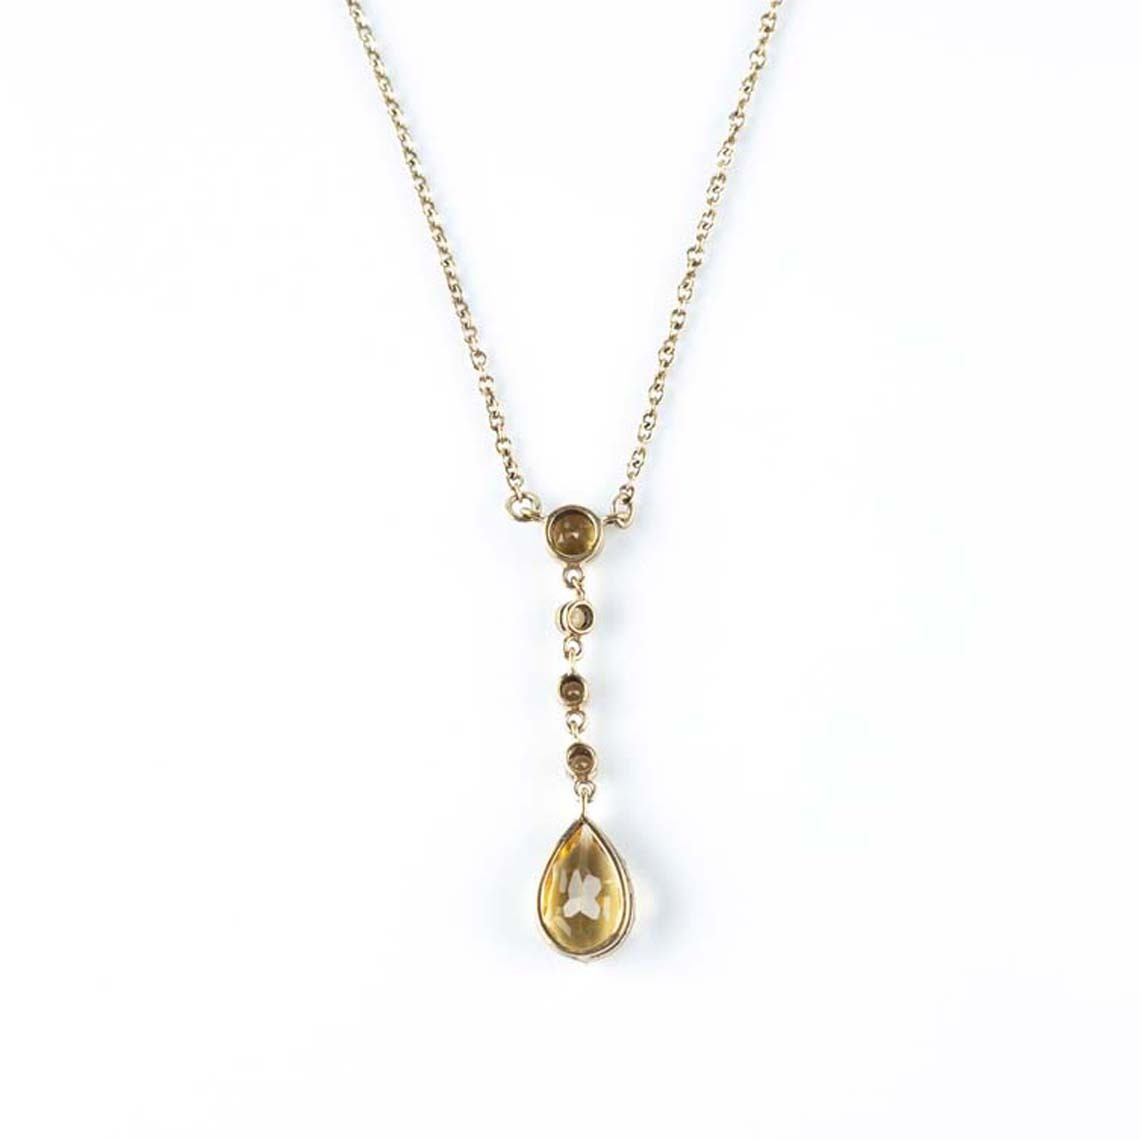 Vintage citrine necklace